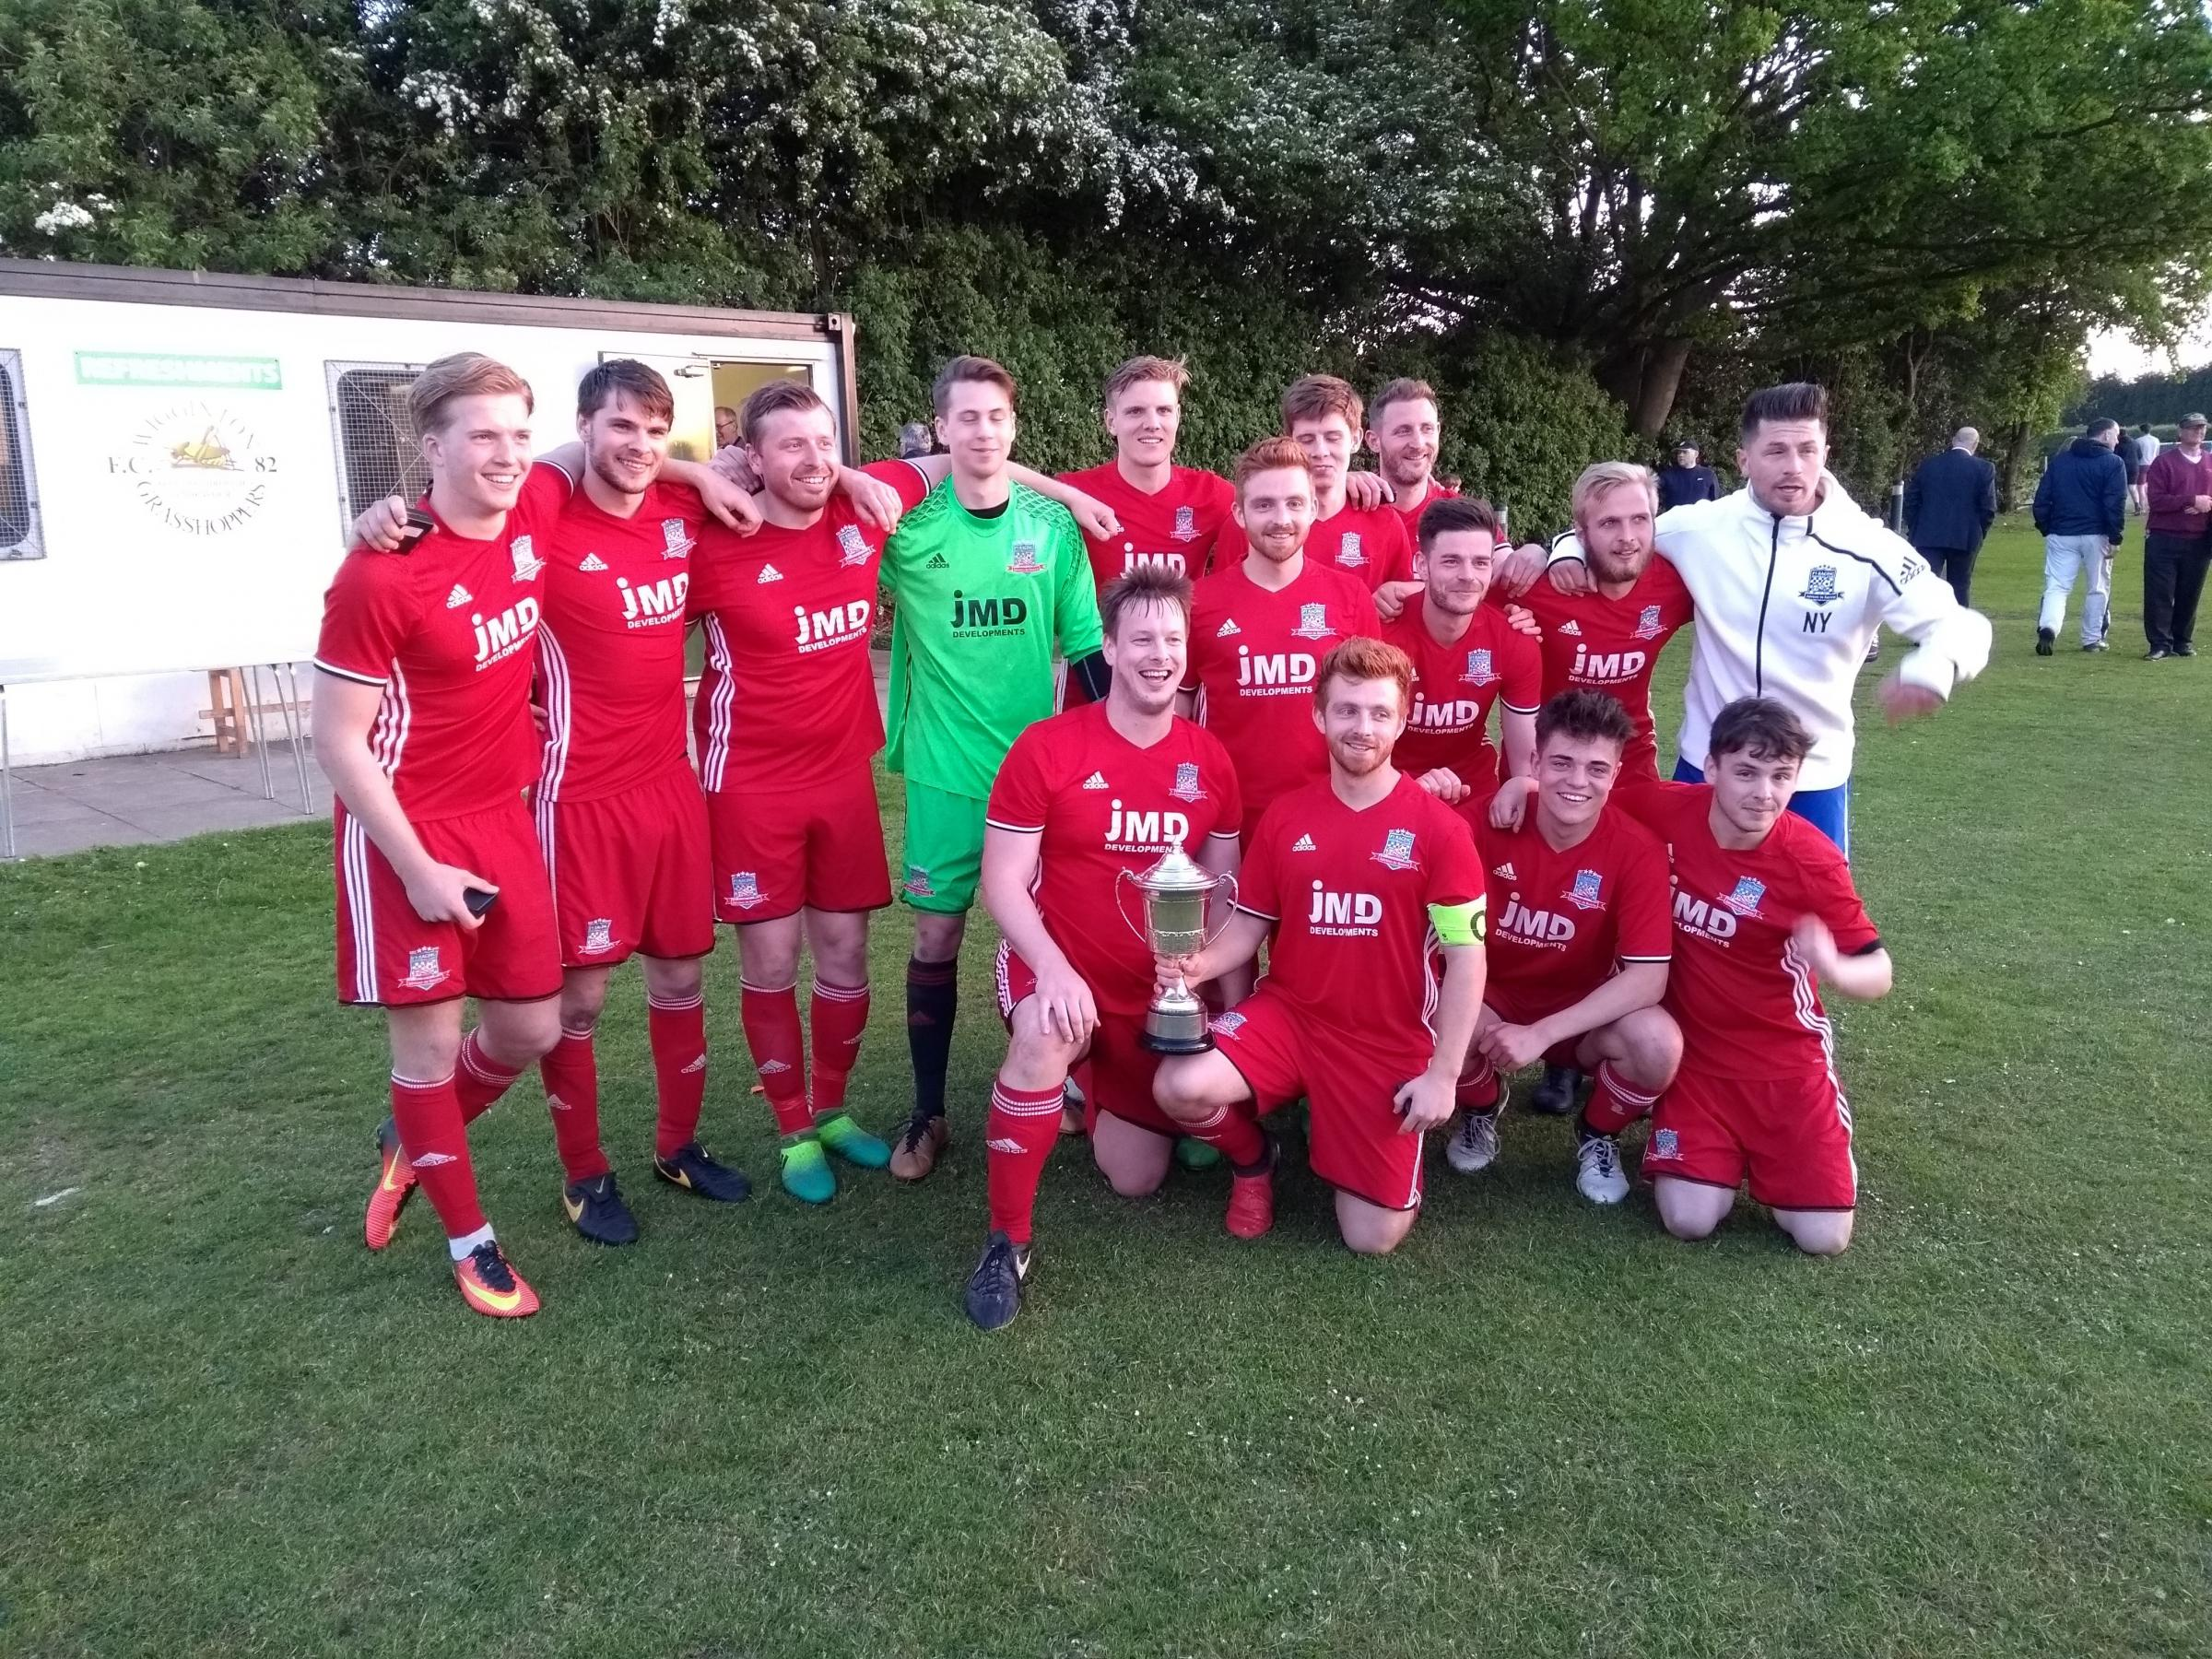 SPOT ON: F1 Racing Reserves won their first-ever cup by beating their Thorpe United counterparts on penalties